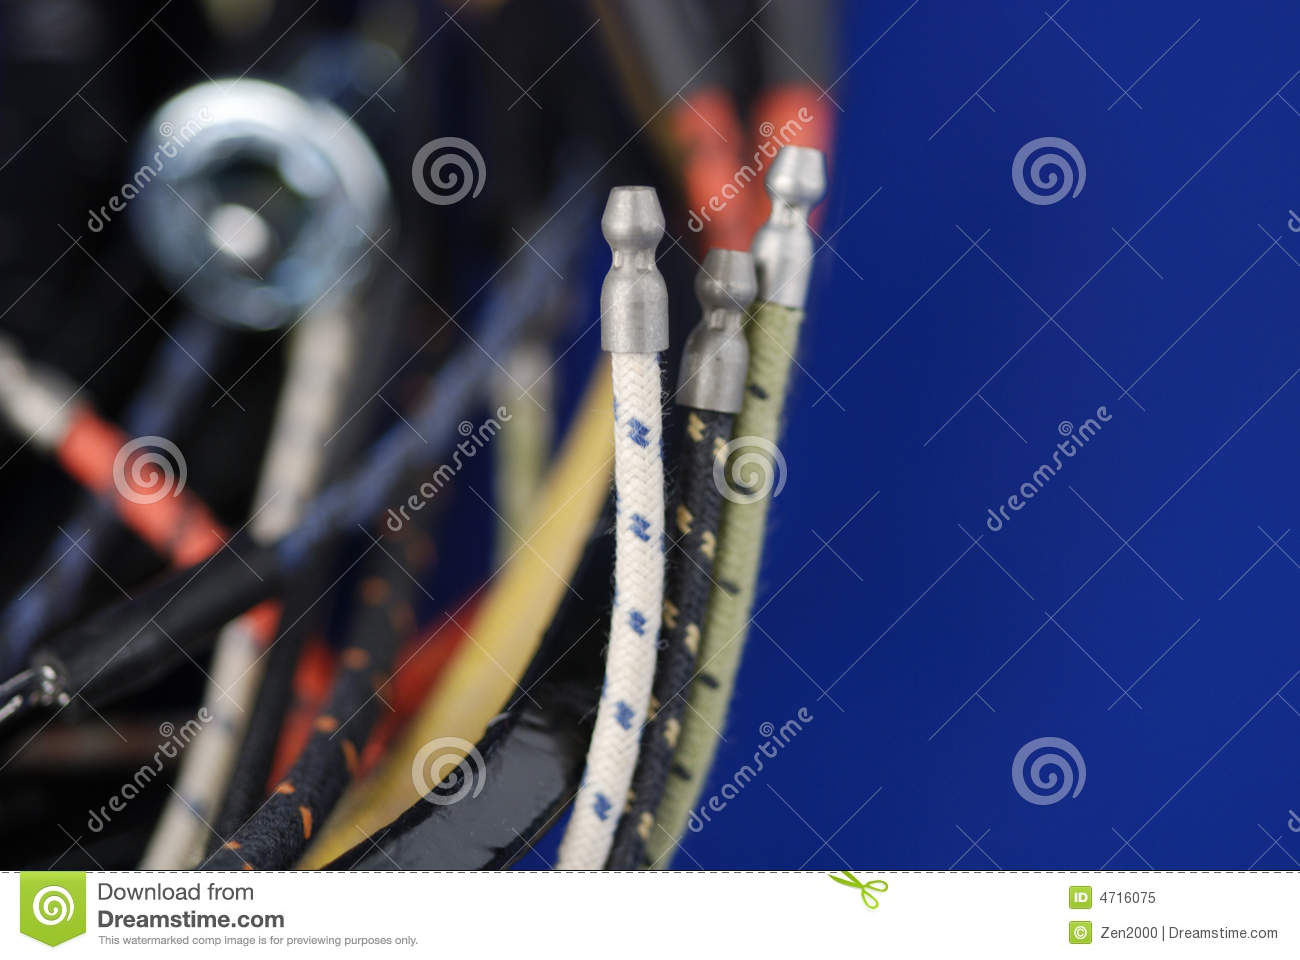 Wiring harness royalty free stock photo image